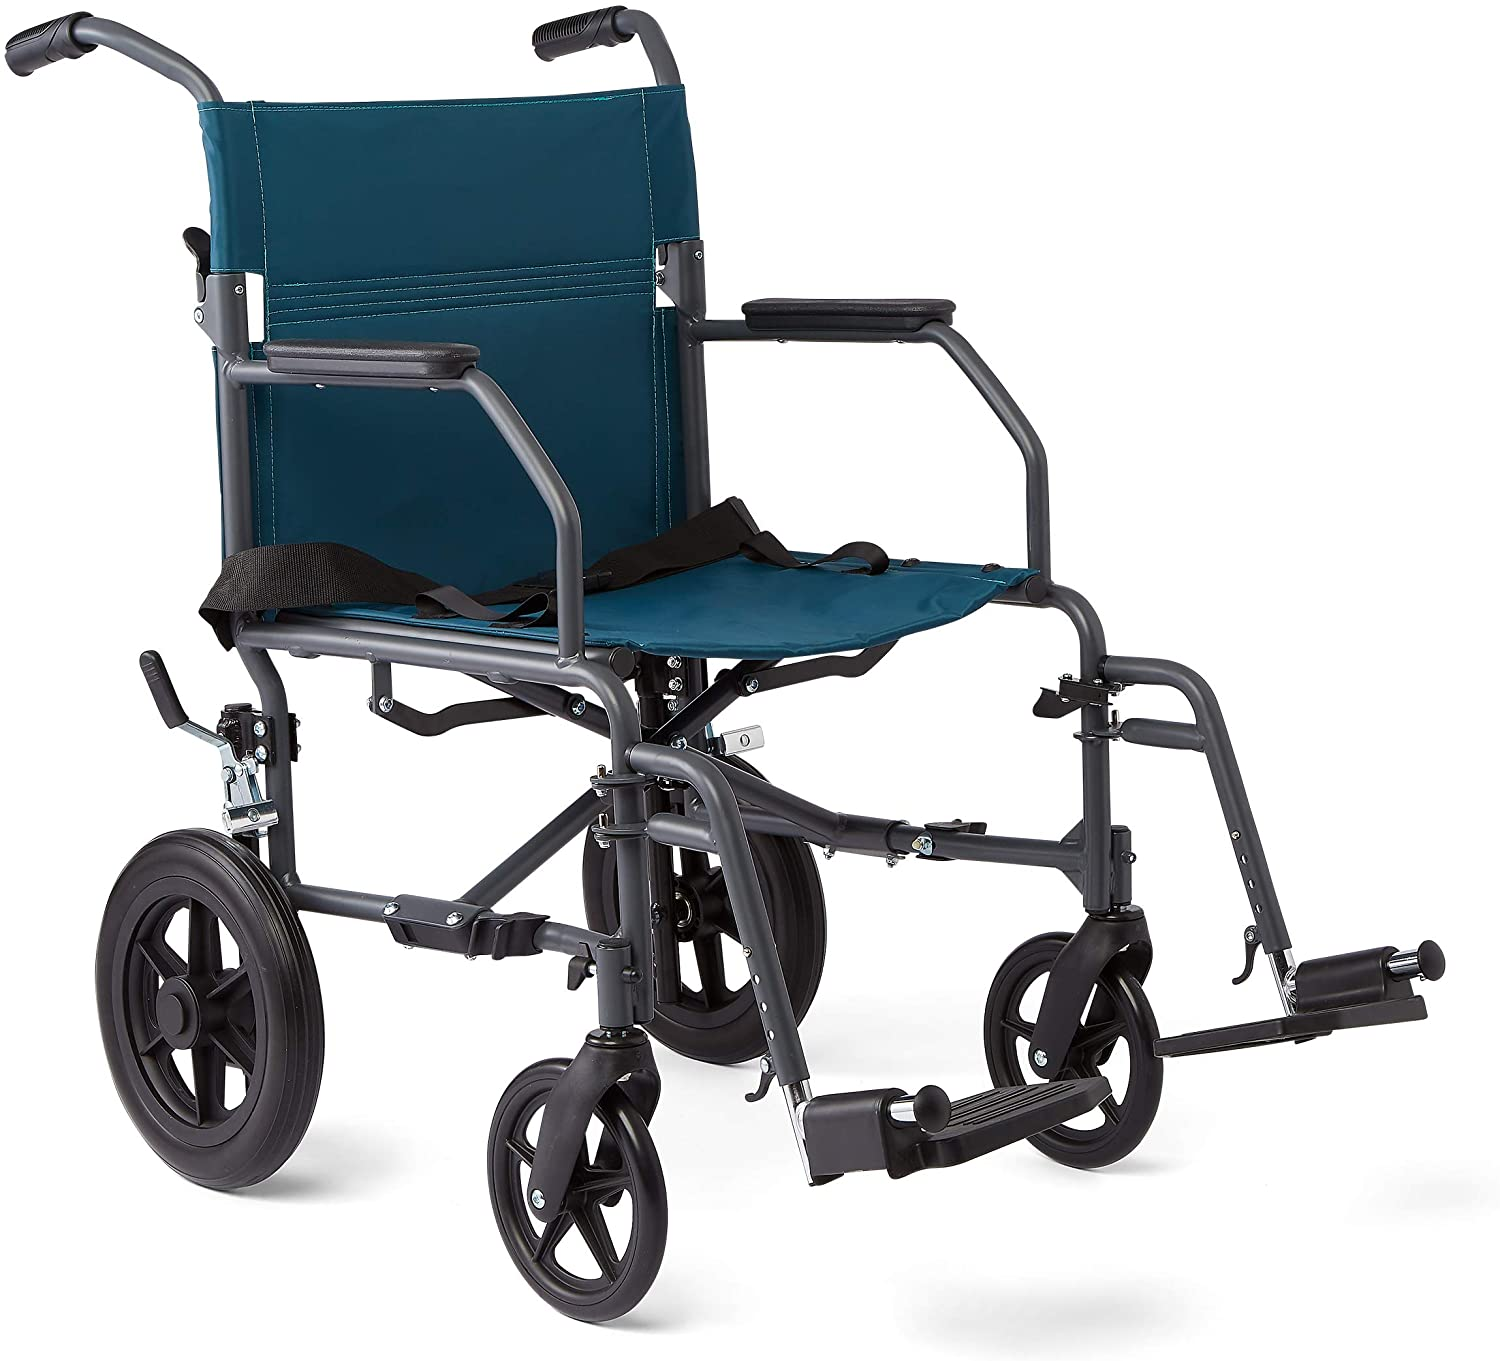 B07G8PK6BC Medline Transport Wheelchair with Lightweight Steel Frame, Microban Antimicrobial Protection, Folding Chair is Portable, Large 12 inch Back Wheels, 19 inch Wide Seat, Teal 81eQI5aNIBL